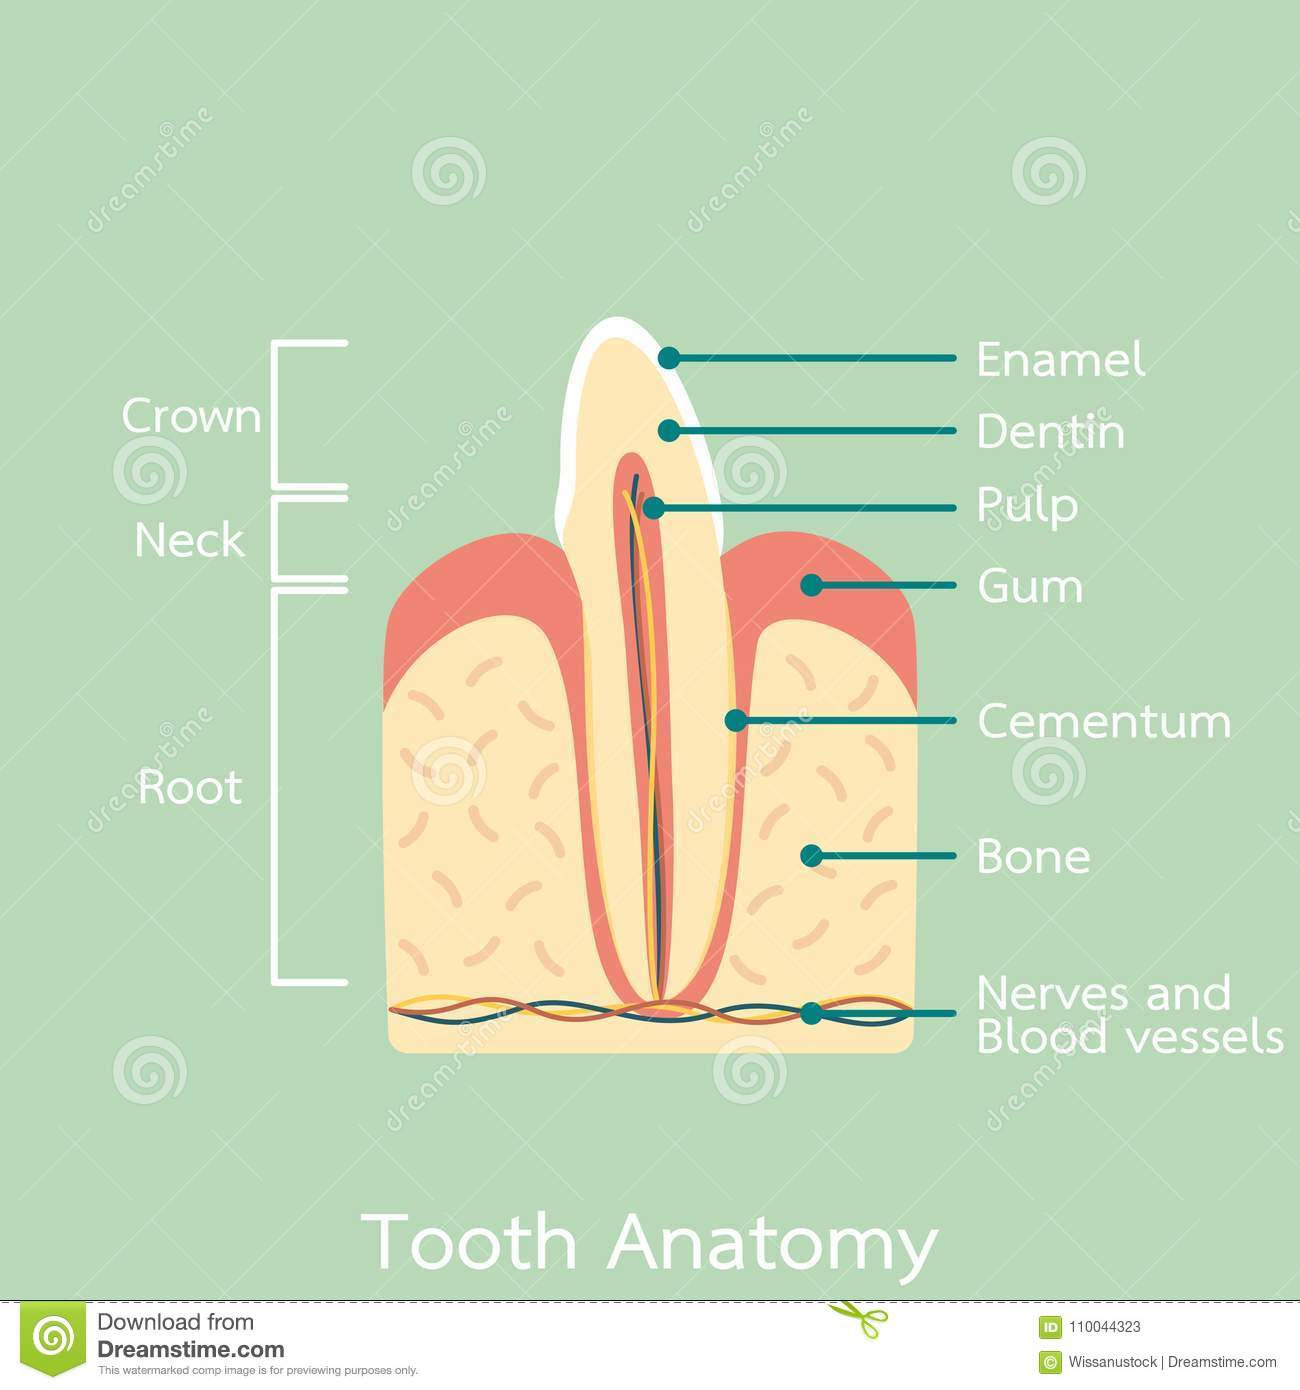 Side View Of Incisor Tooth Anatomy Structure Including The Bone And